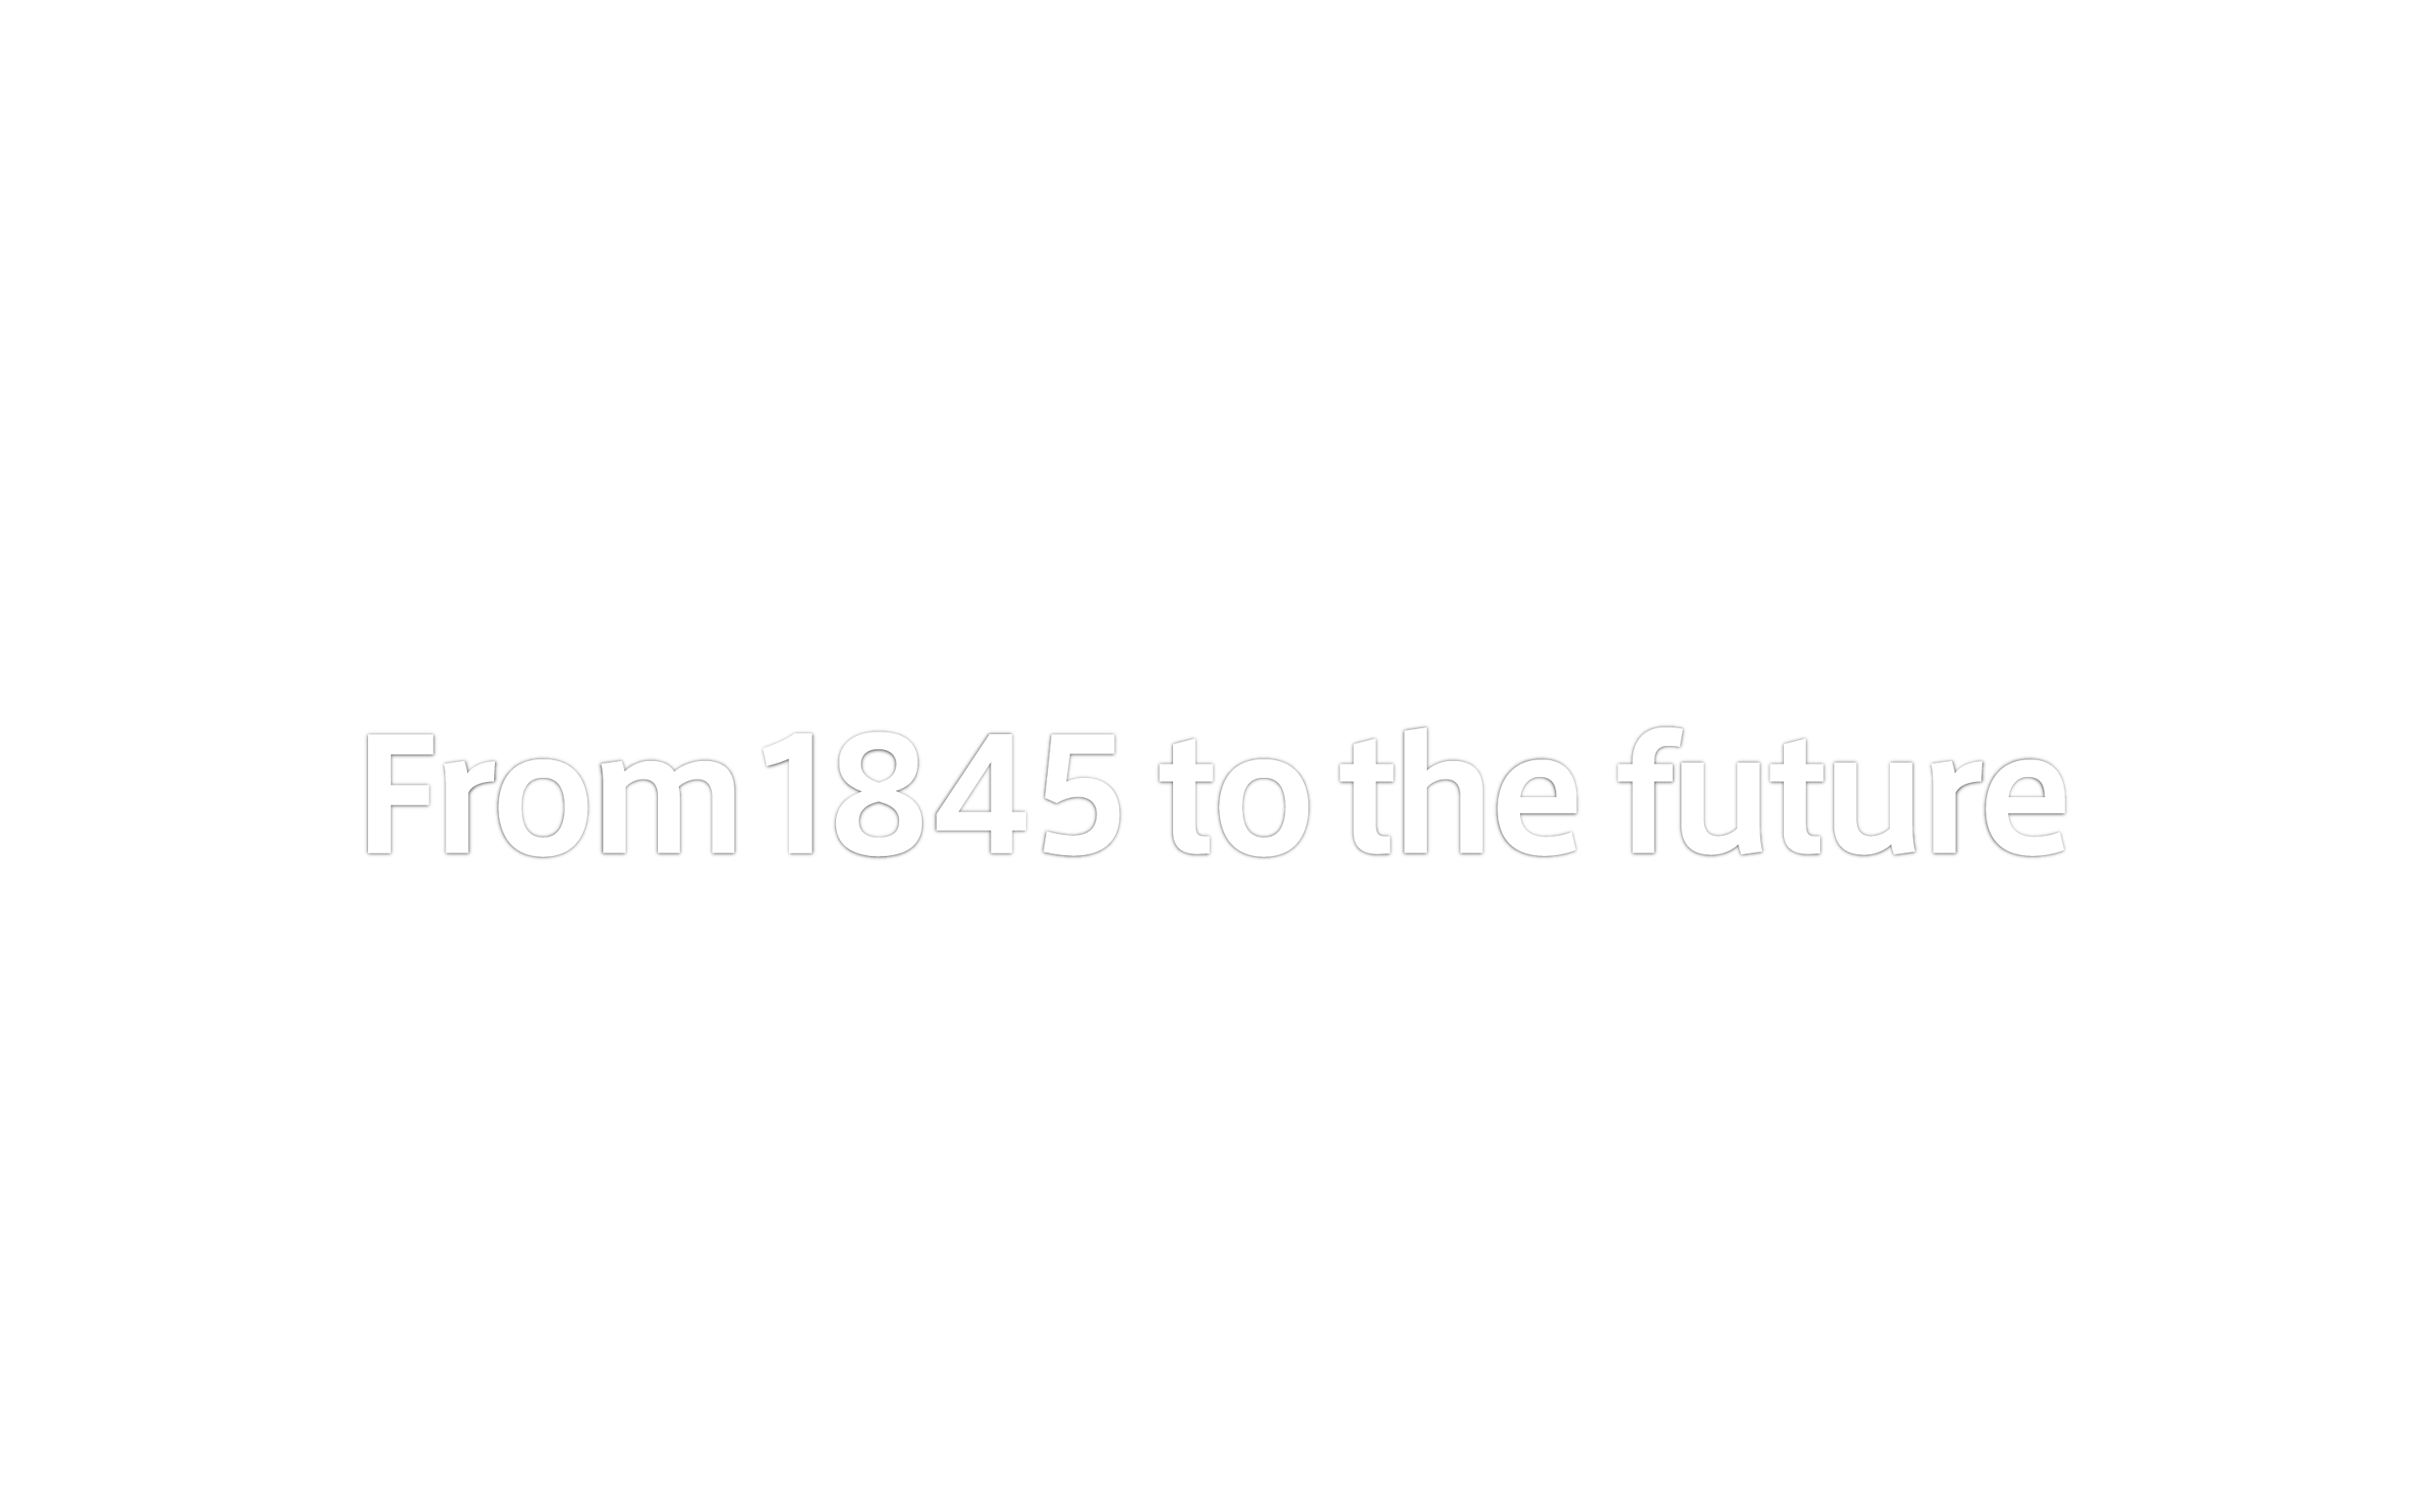 From 1845 to the future